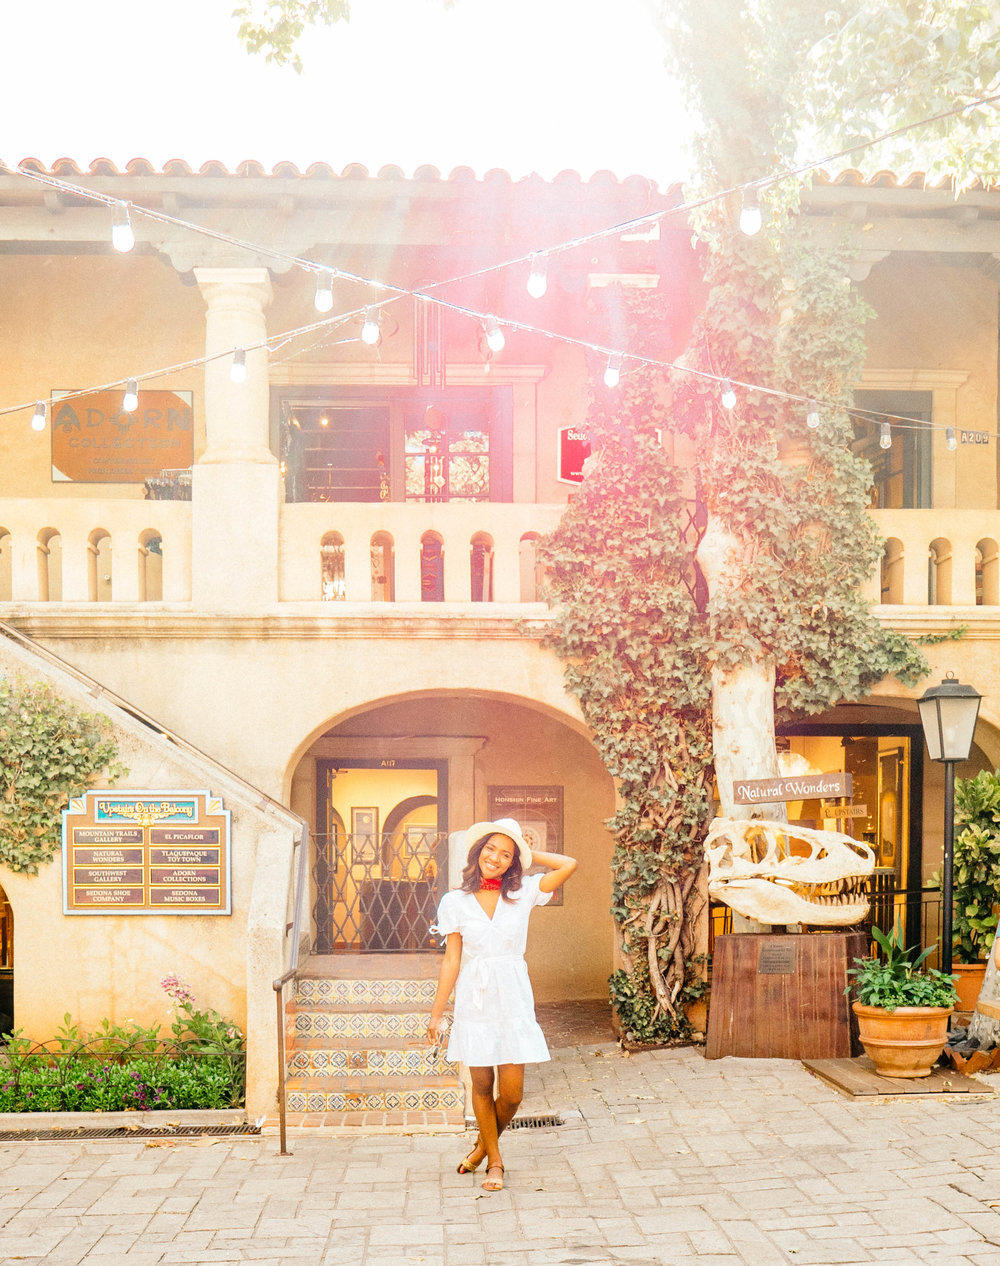 """Back with another Sedona post! This time, we explored the really nice shops of the Tlaquepaque Arts & Crafts Village. Try saying """"Tlaquepaque"""" a couple of times! It was hard for me to just say it once! I had been to these shops once before, on a girls trip back in January. But this time the weather was much warmer and all of the flowers were in bloom. There were roses everywhere! And let me just say that as soon as I walked inside the shopping area, it felt as if I was transported back to Rome...the shopping village has a very """"Tuscan"""" feel and reminded me of Italy. It was truly beautiful. We ate at Pisa Lisa first, which was just down the road and quite possibly one of my favorite pizza spots I've EVER been to (apart from the pizzarias in Italy). And then we went to the shops to """"walk off our pizza"""" and we enjoyed a drink at the """"Oak Creek Brewery"""" which is a really cool local brewery with great drinks and beer! If you ever go to Sedona, you have to go to Tlaquepaque and make a stop at Pisa Lisa for pizza and Oak Creek Brewery! Till next time! *kisses* - Cristal"""